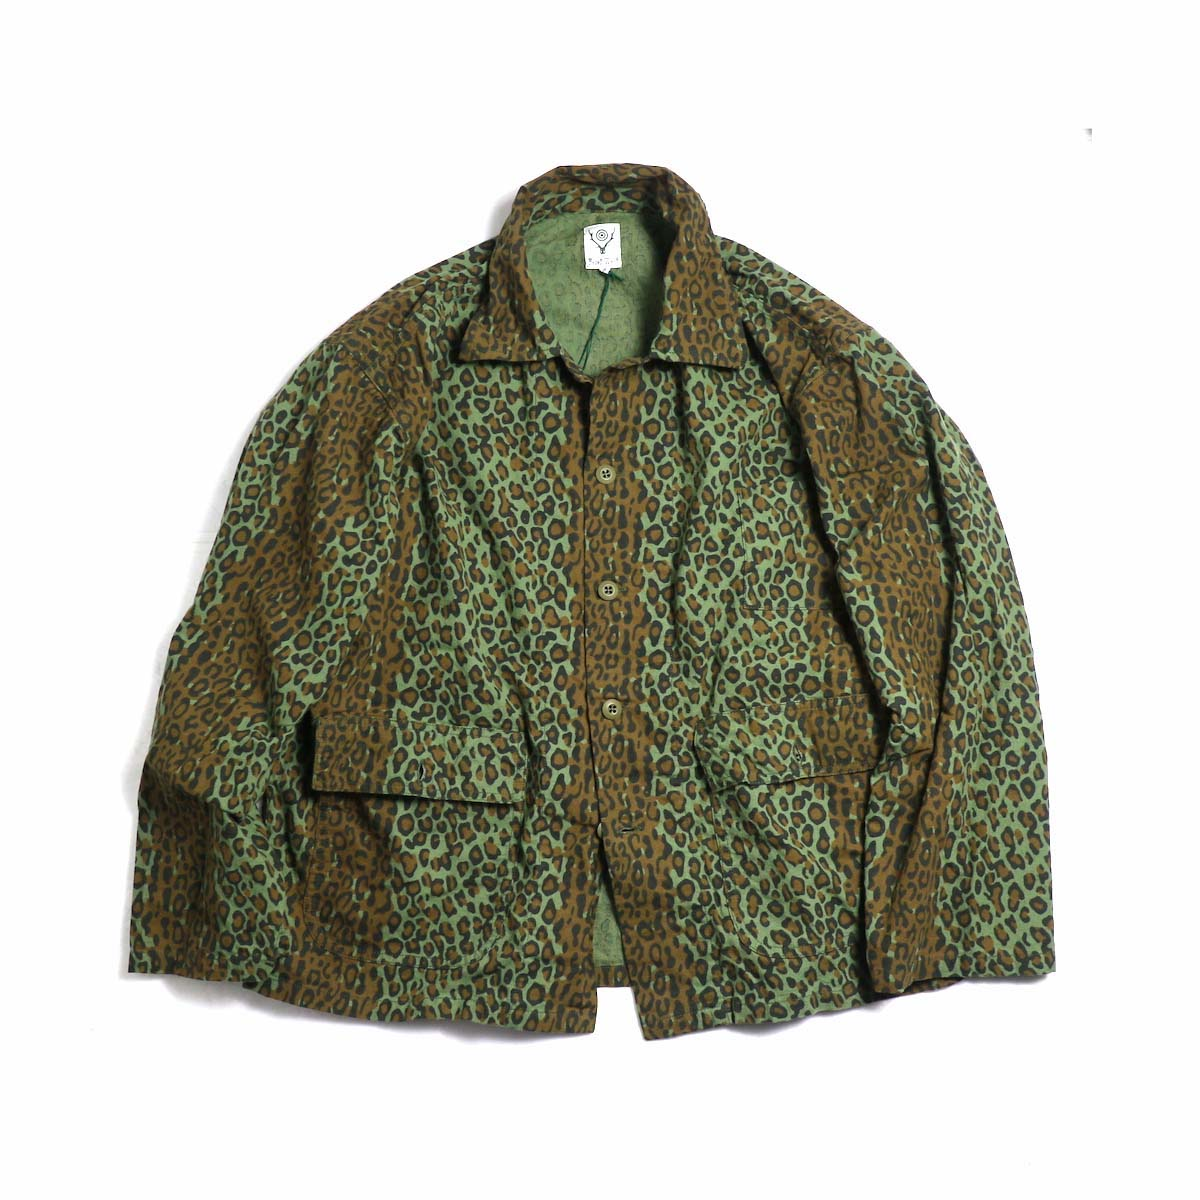 South2 West8 / HUNTING SHIRT - PRINTED FLANNEL / CAMOUFLAGE